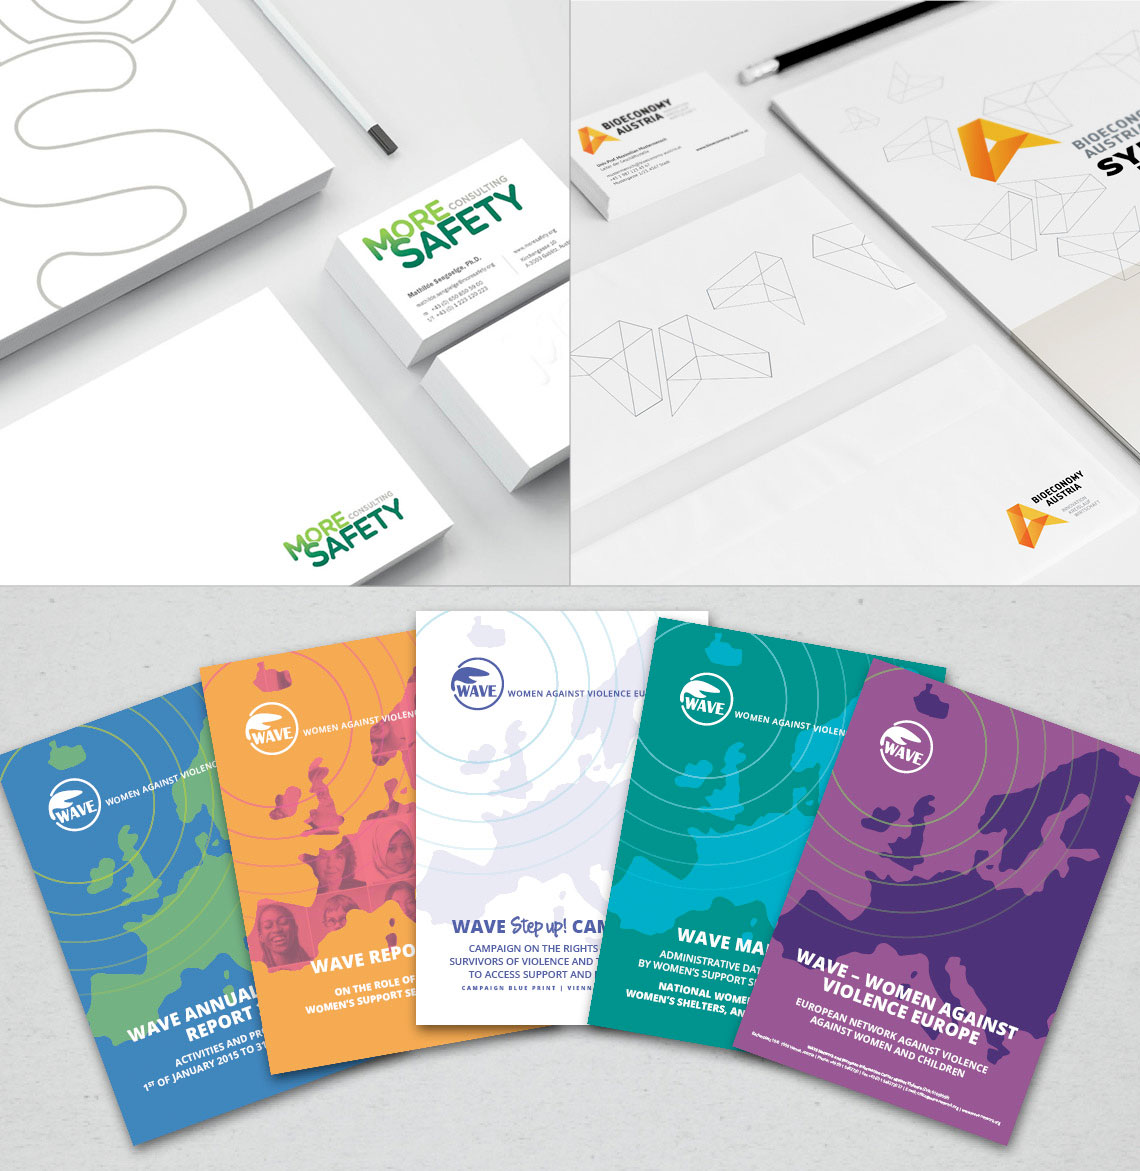 corporate design – visual identity for companies and organizations